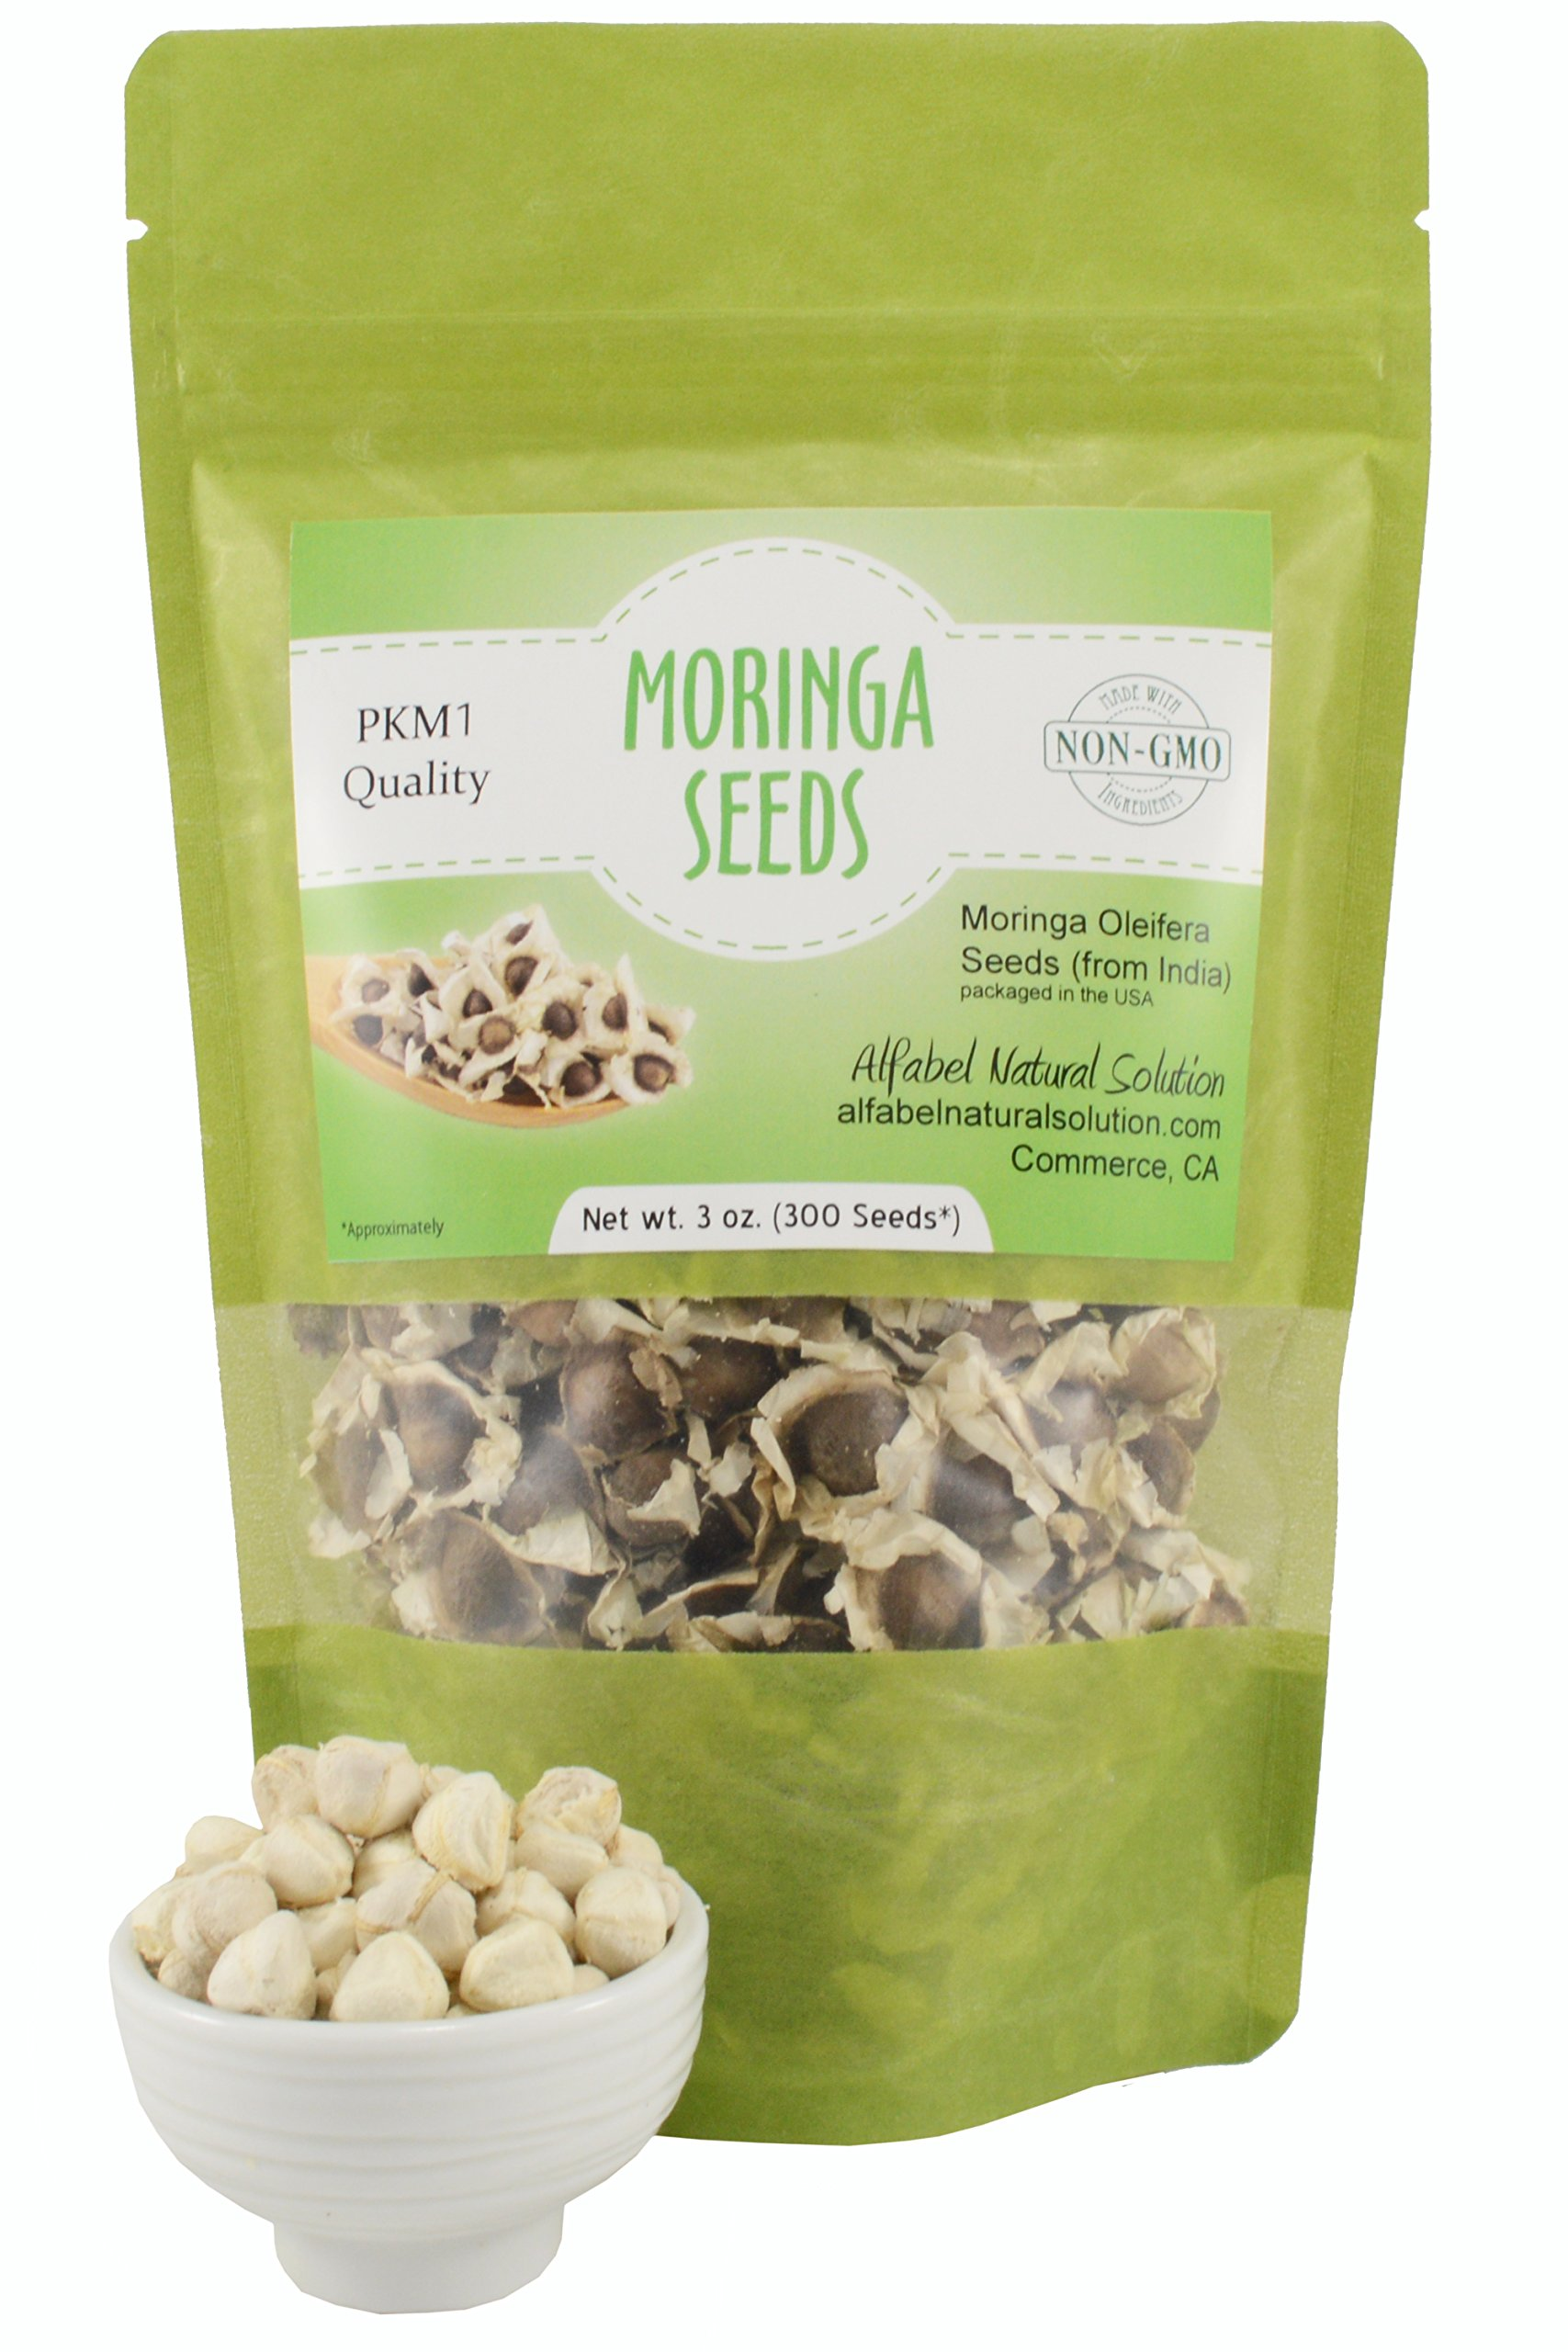 Moringa Oleifera Seeds Non-GMO PKM1 Premium Quality - Organically Grown - 3 oz. (300 Seeds Approximately) Resealable Stand Up Pouch by Alfabel Natural Solution